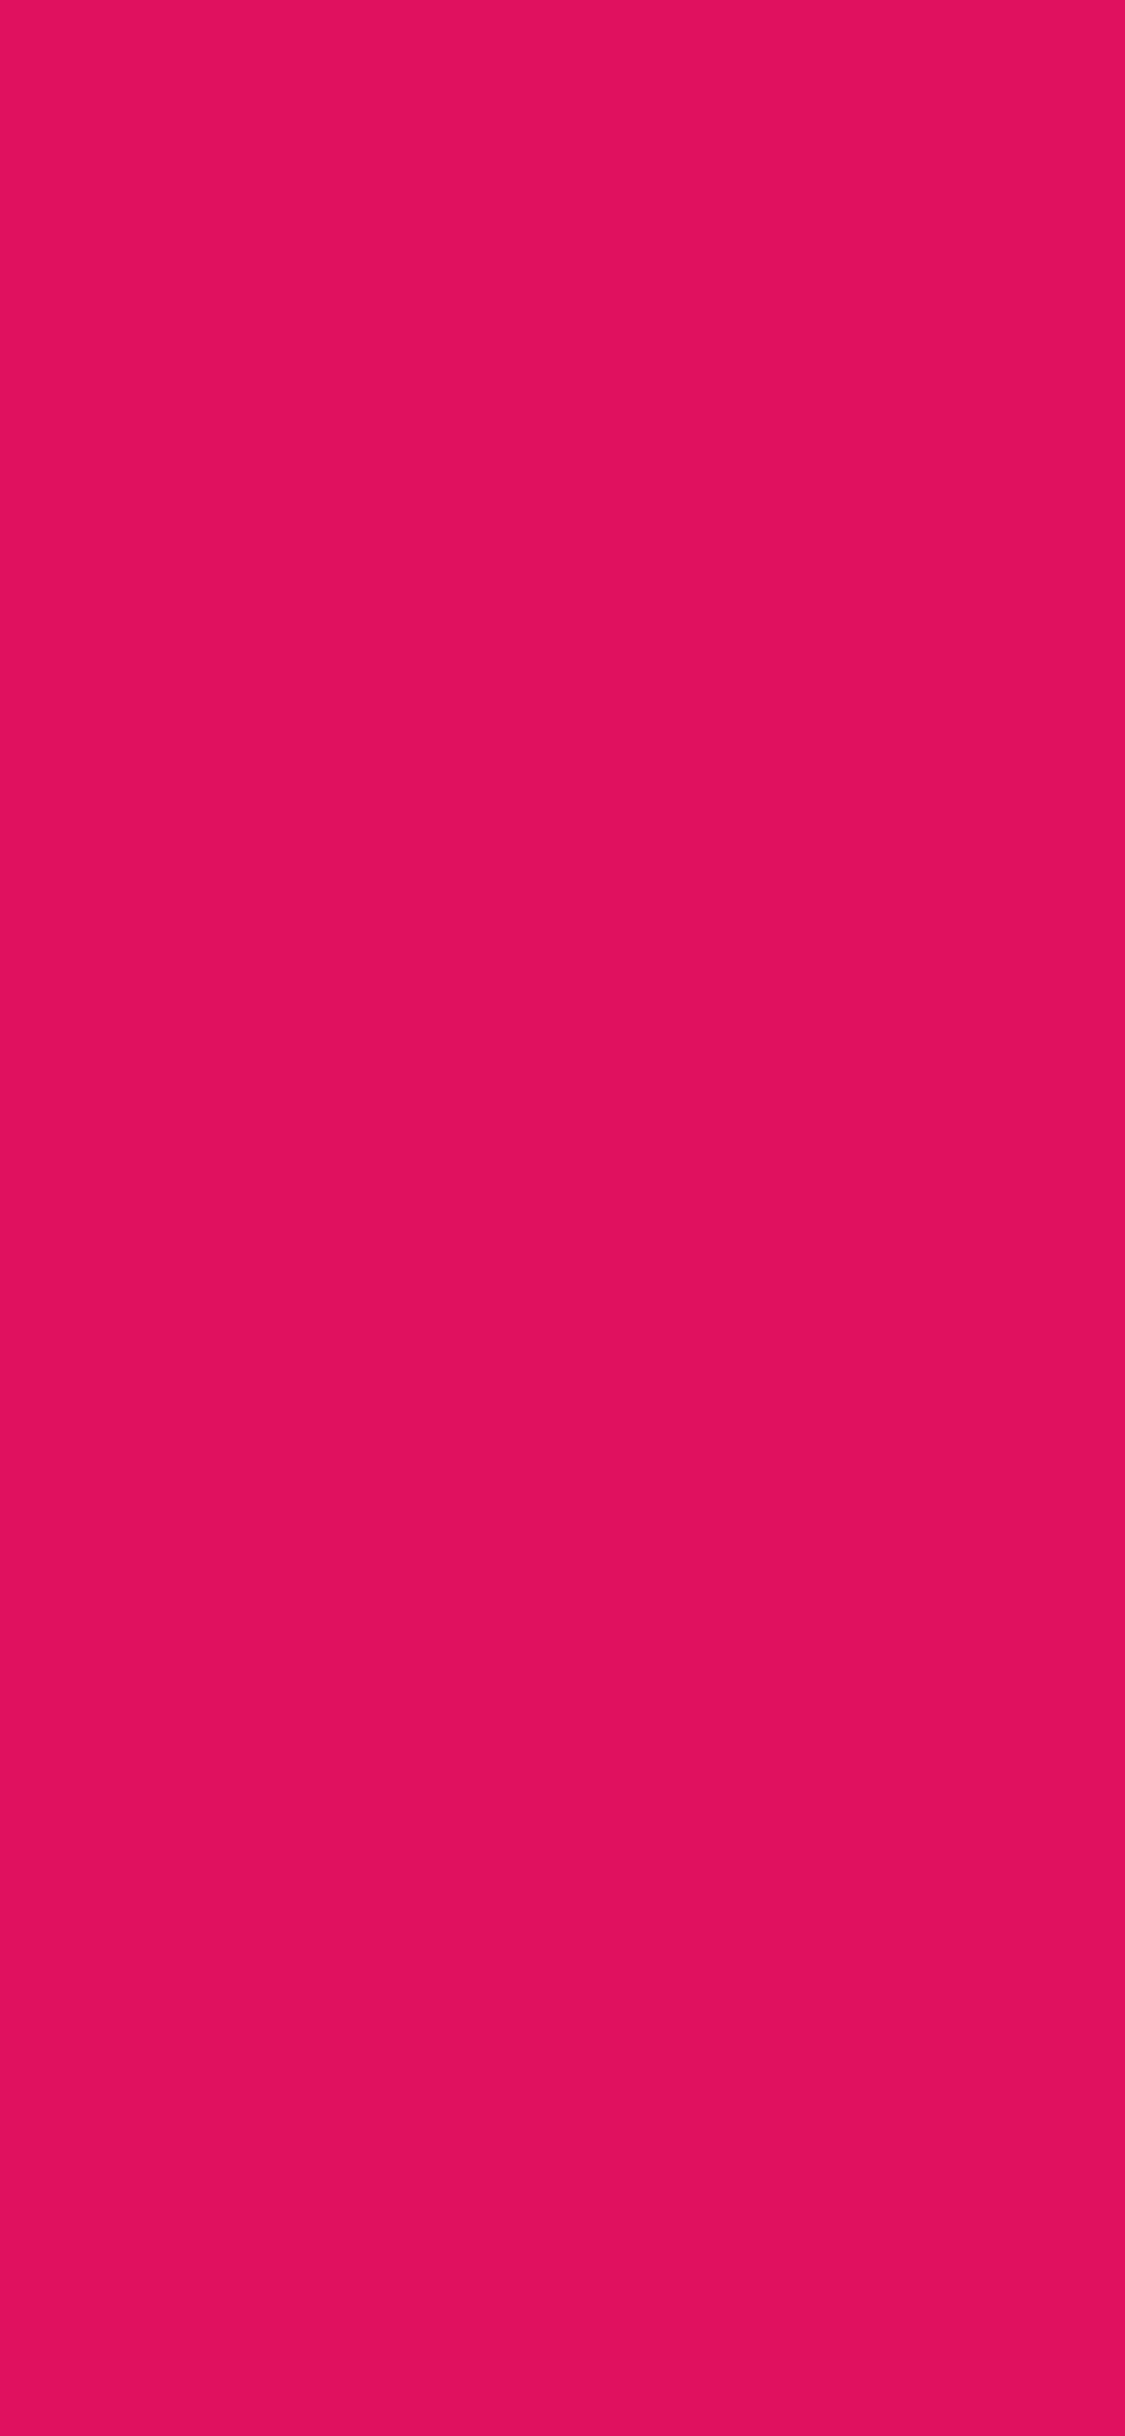 1125x2436 Ruby Solid Color Background